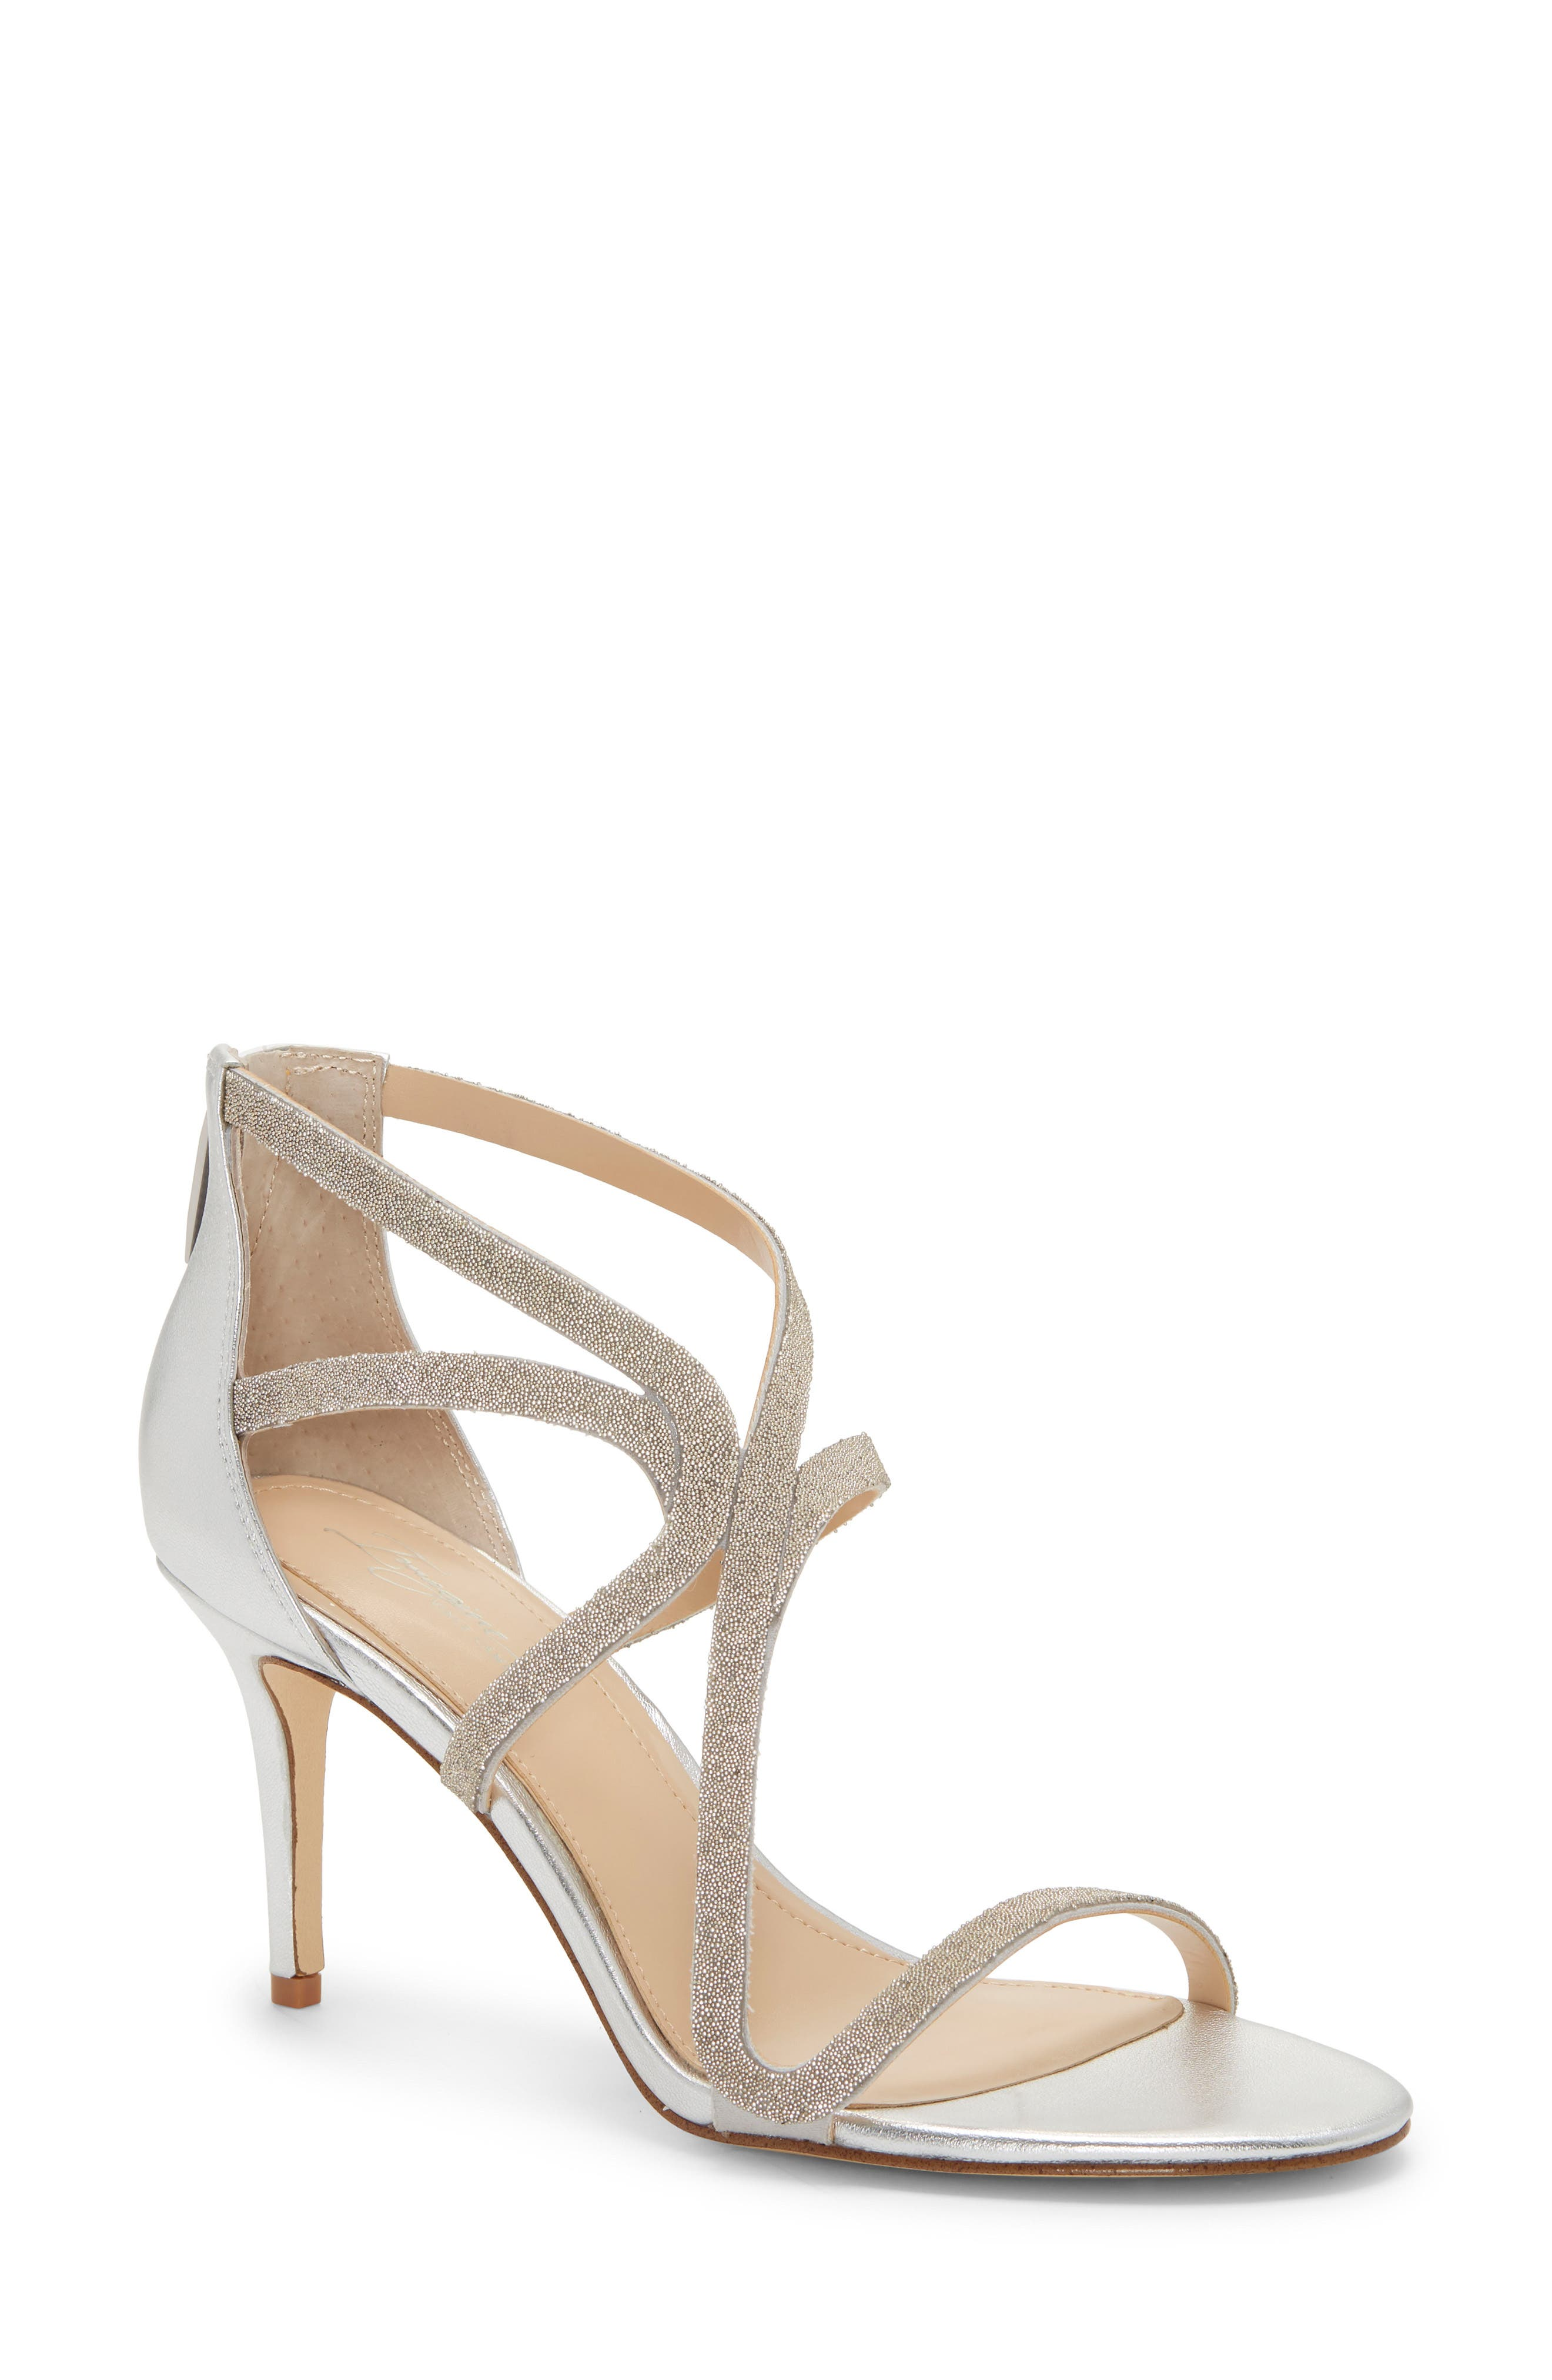 Imagine By Vince Camuto Petara Strappy Sandal- Metallic